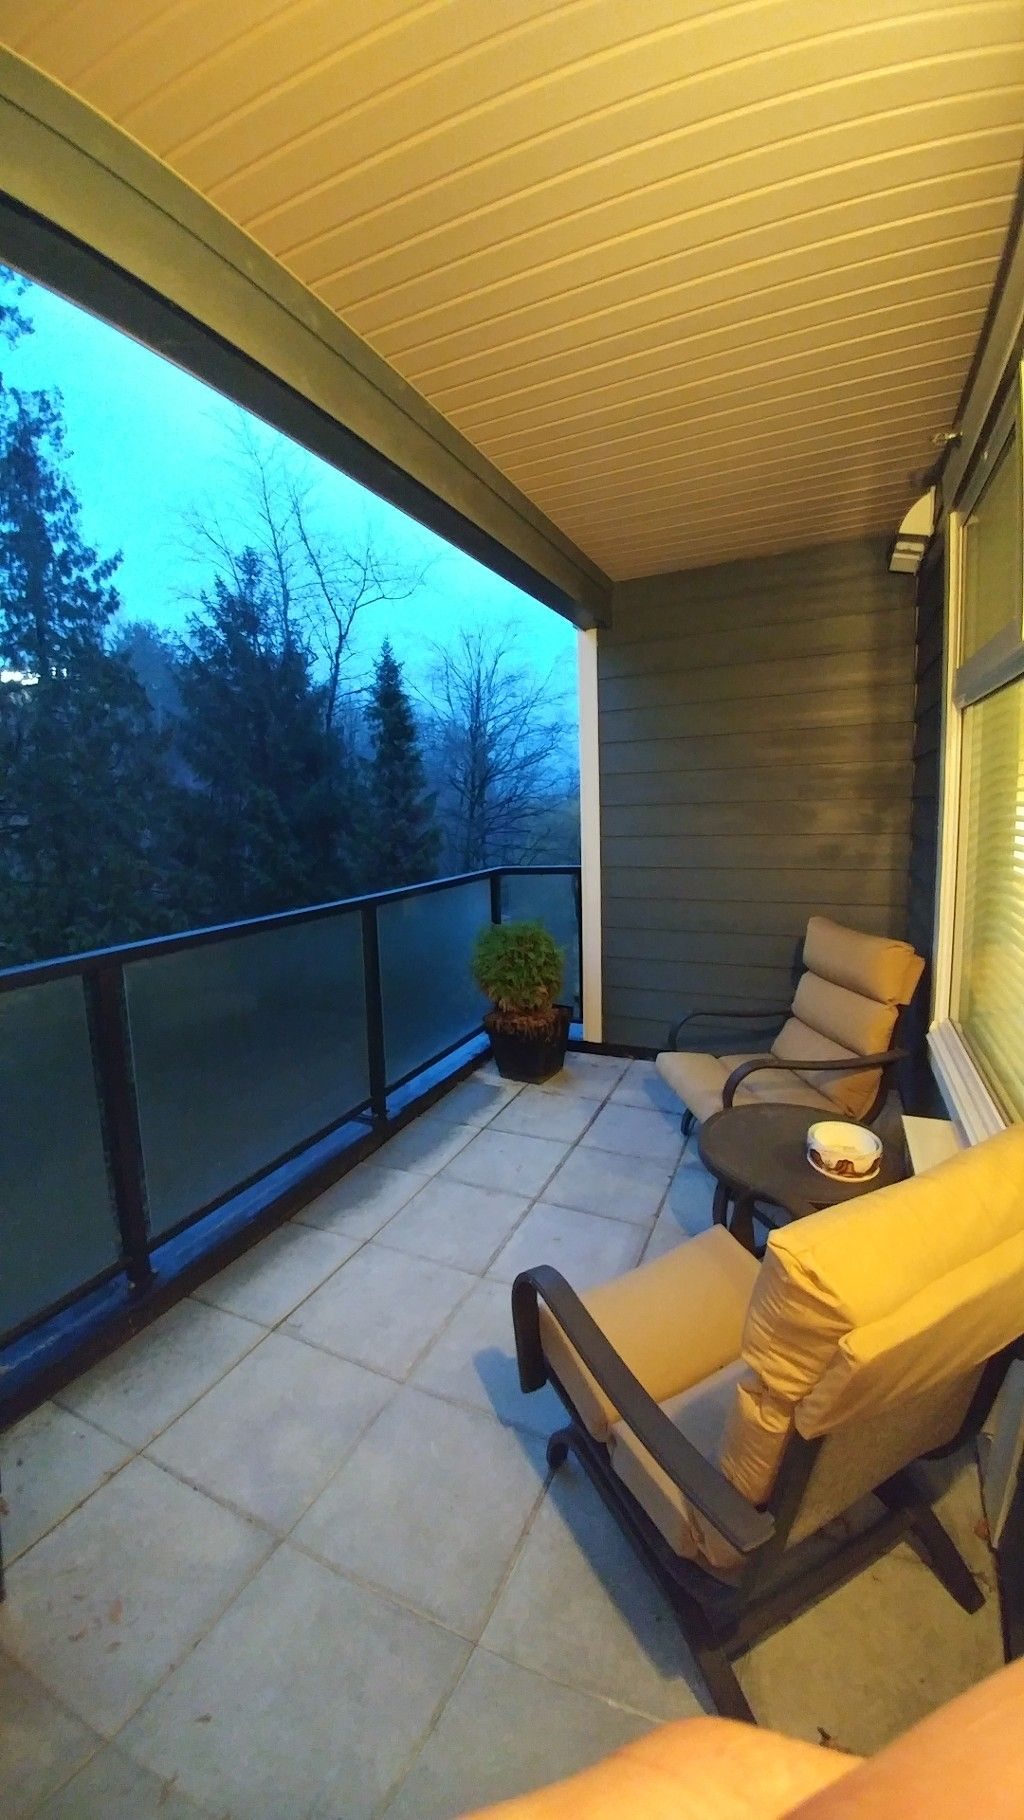 Photo 11: Photos: #102 2238 Whatcom Rd in Abbotsford: Abbotsford East Condo for rent